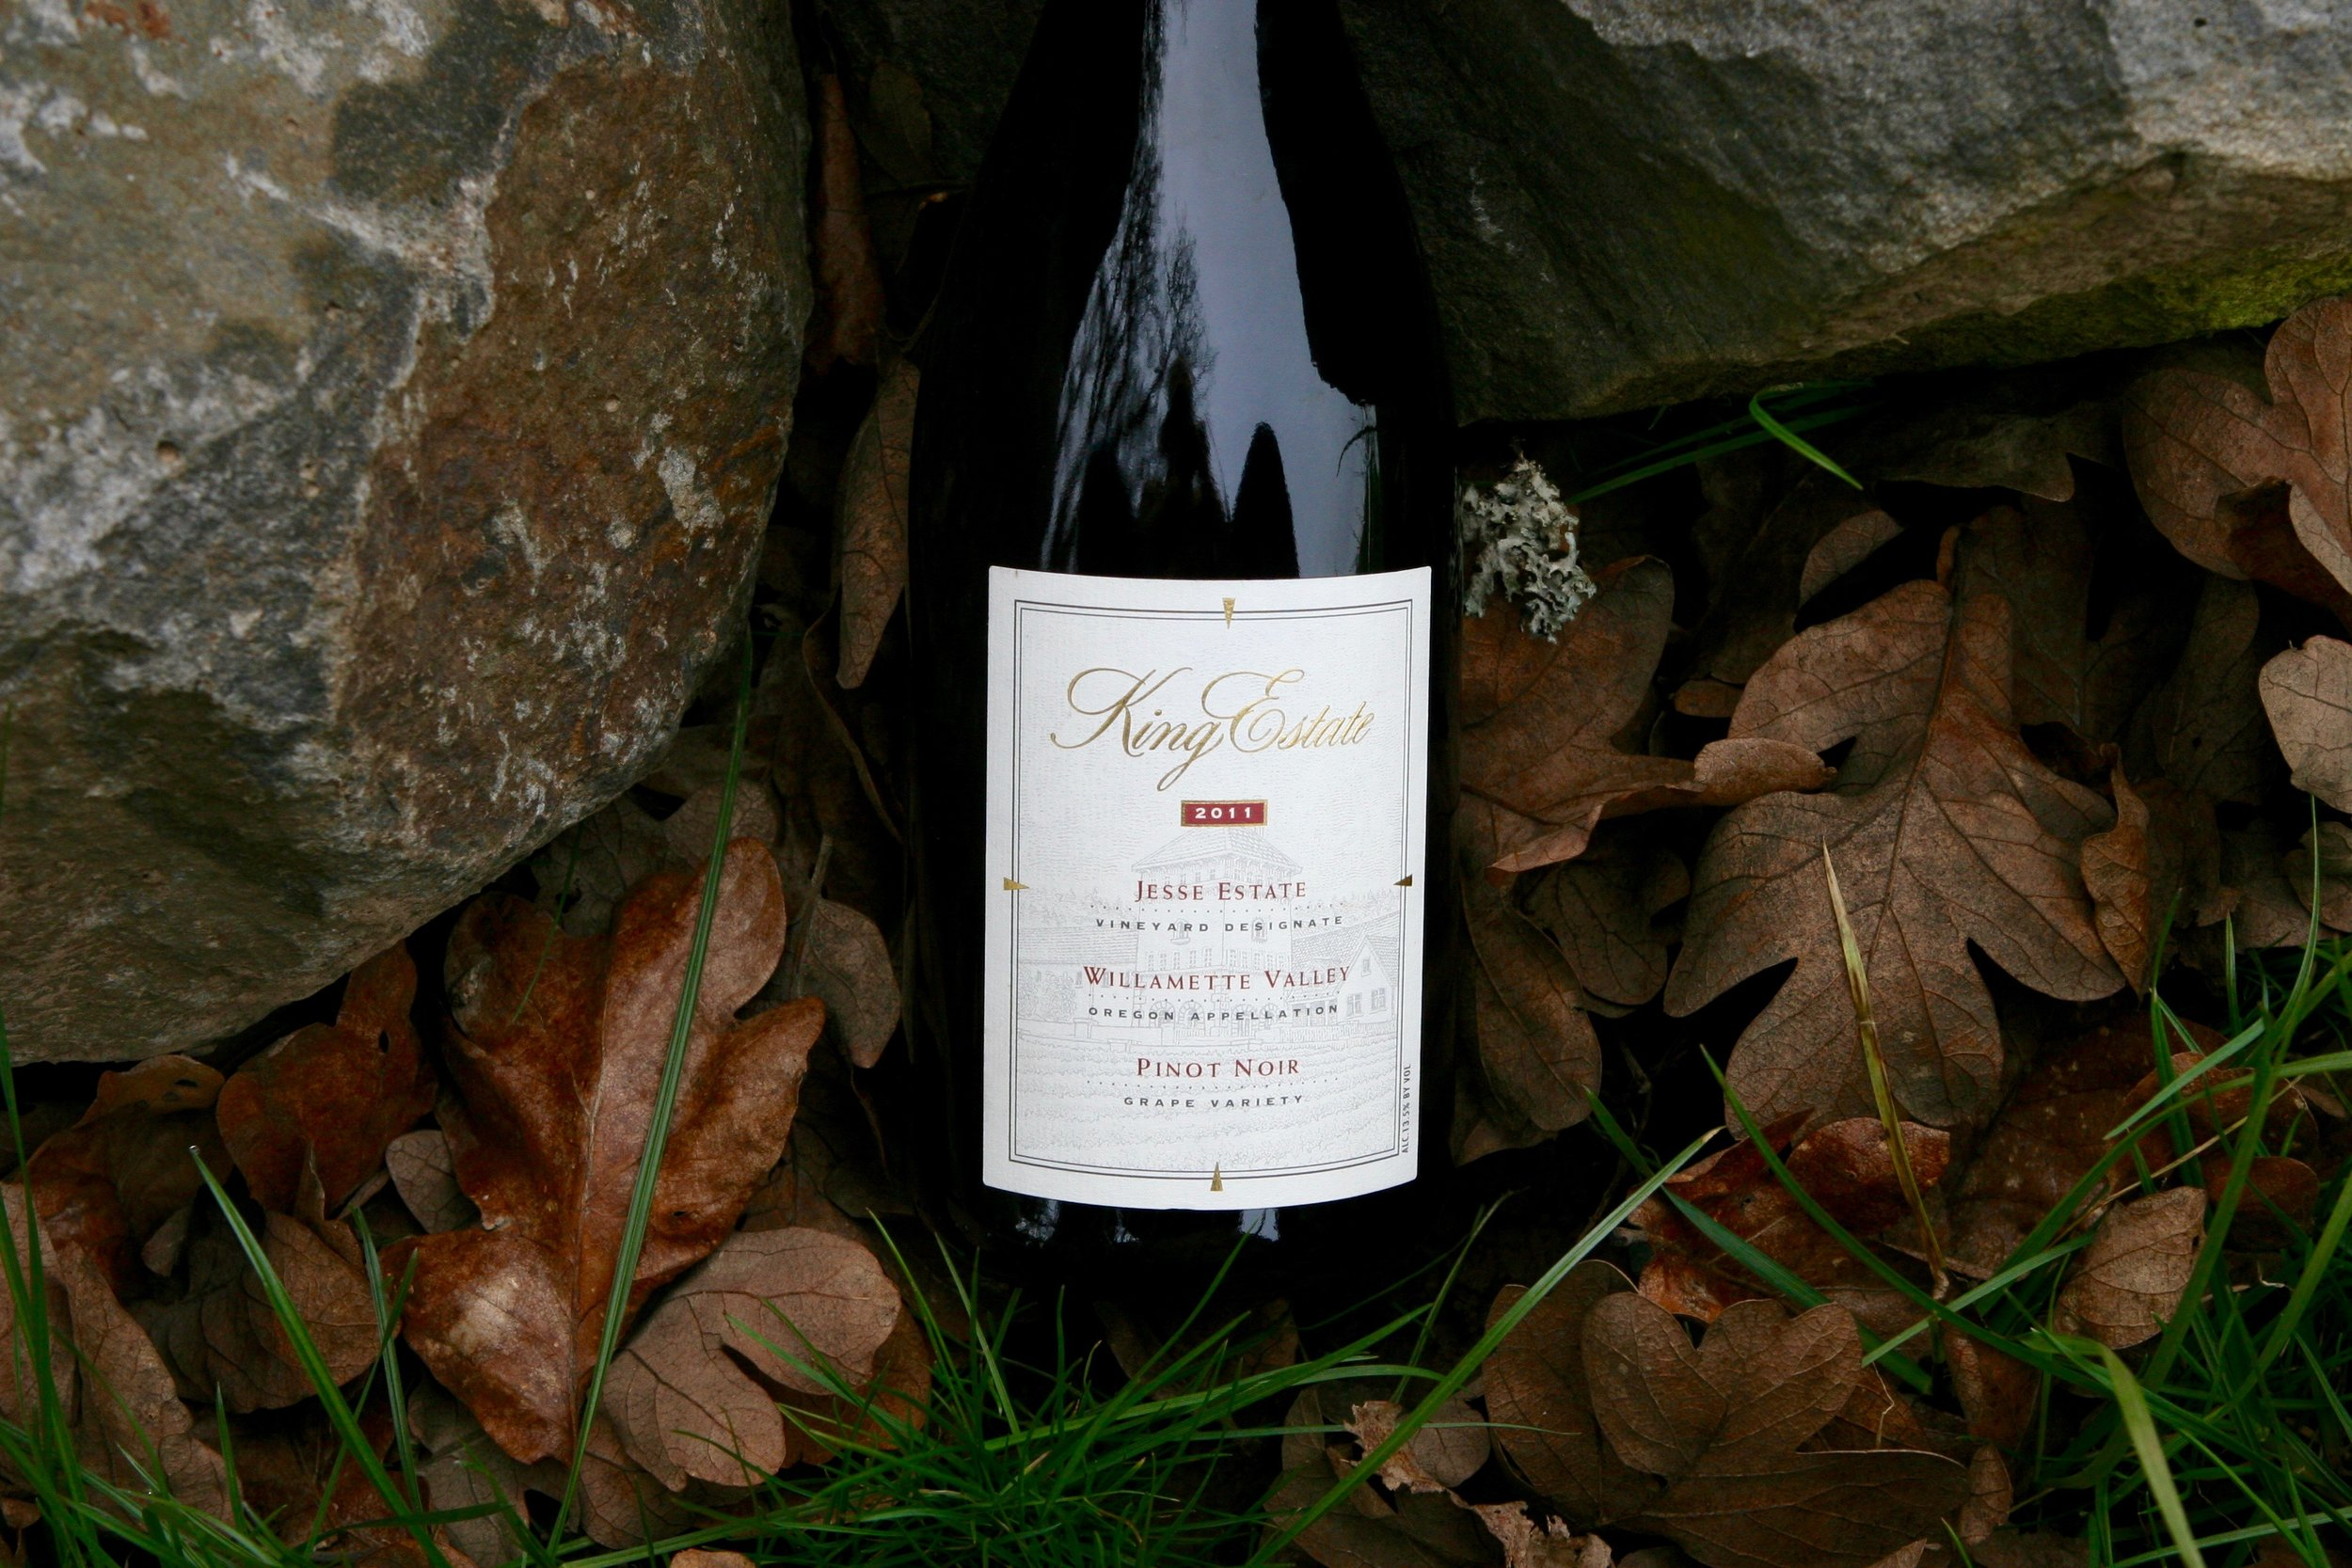 The King Estate 2011 vineyard designate featured grapes from our Nursery Road and Johnson  School sites in this classic Oregon style Pinot Noir. This wine received an 89 from wine enthusiast.